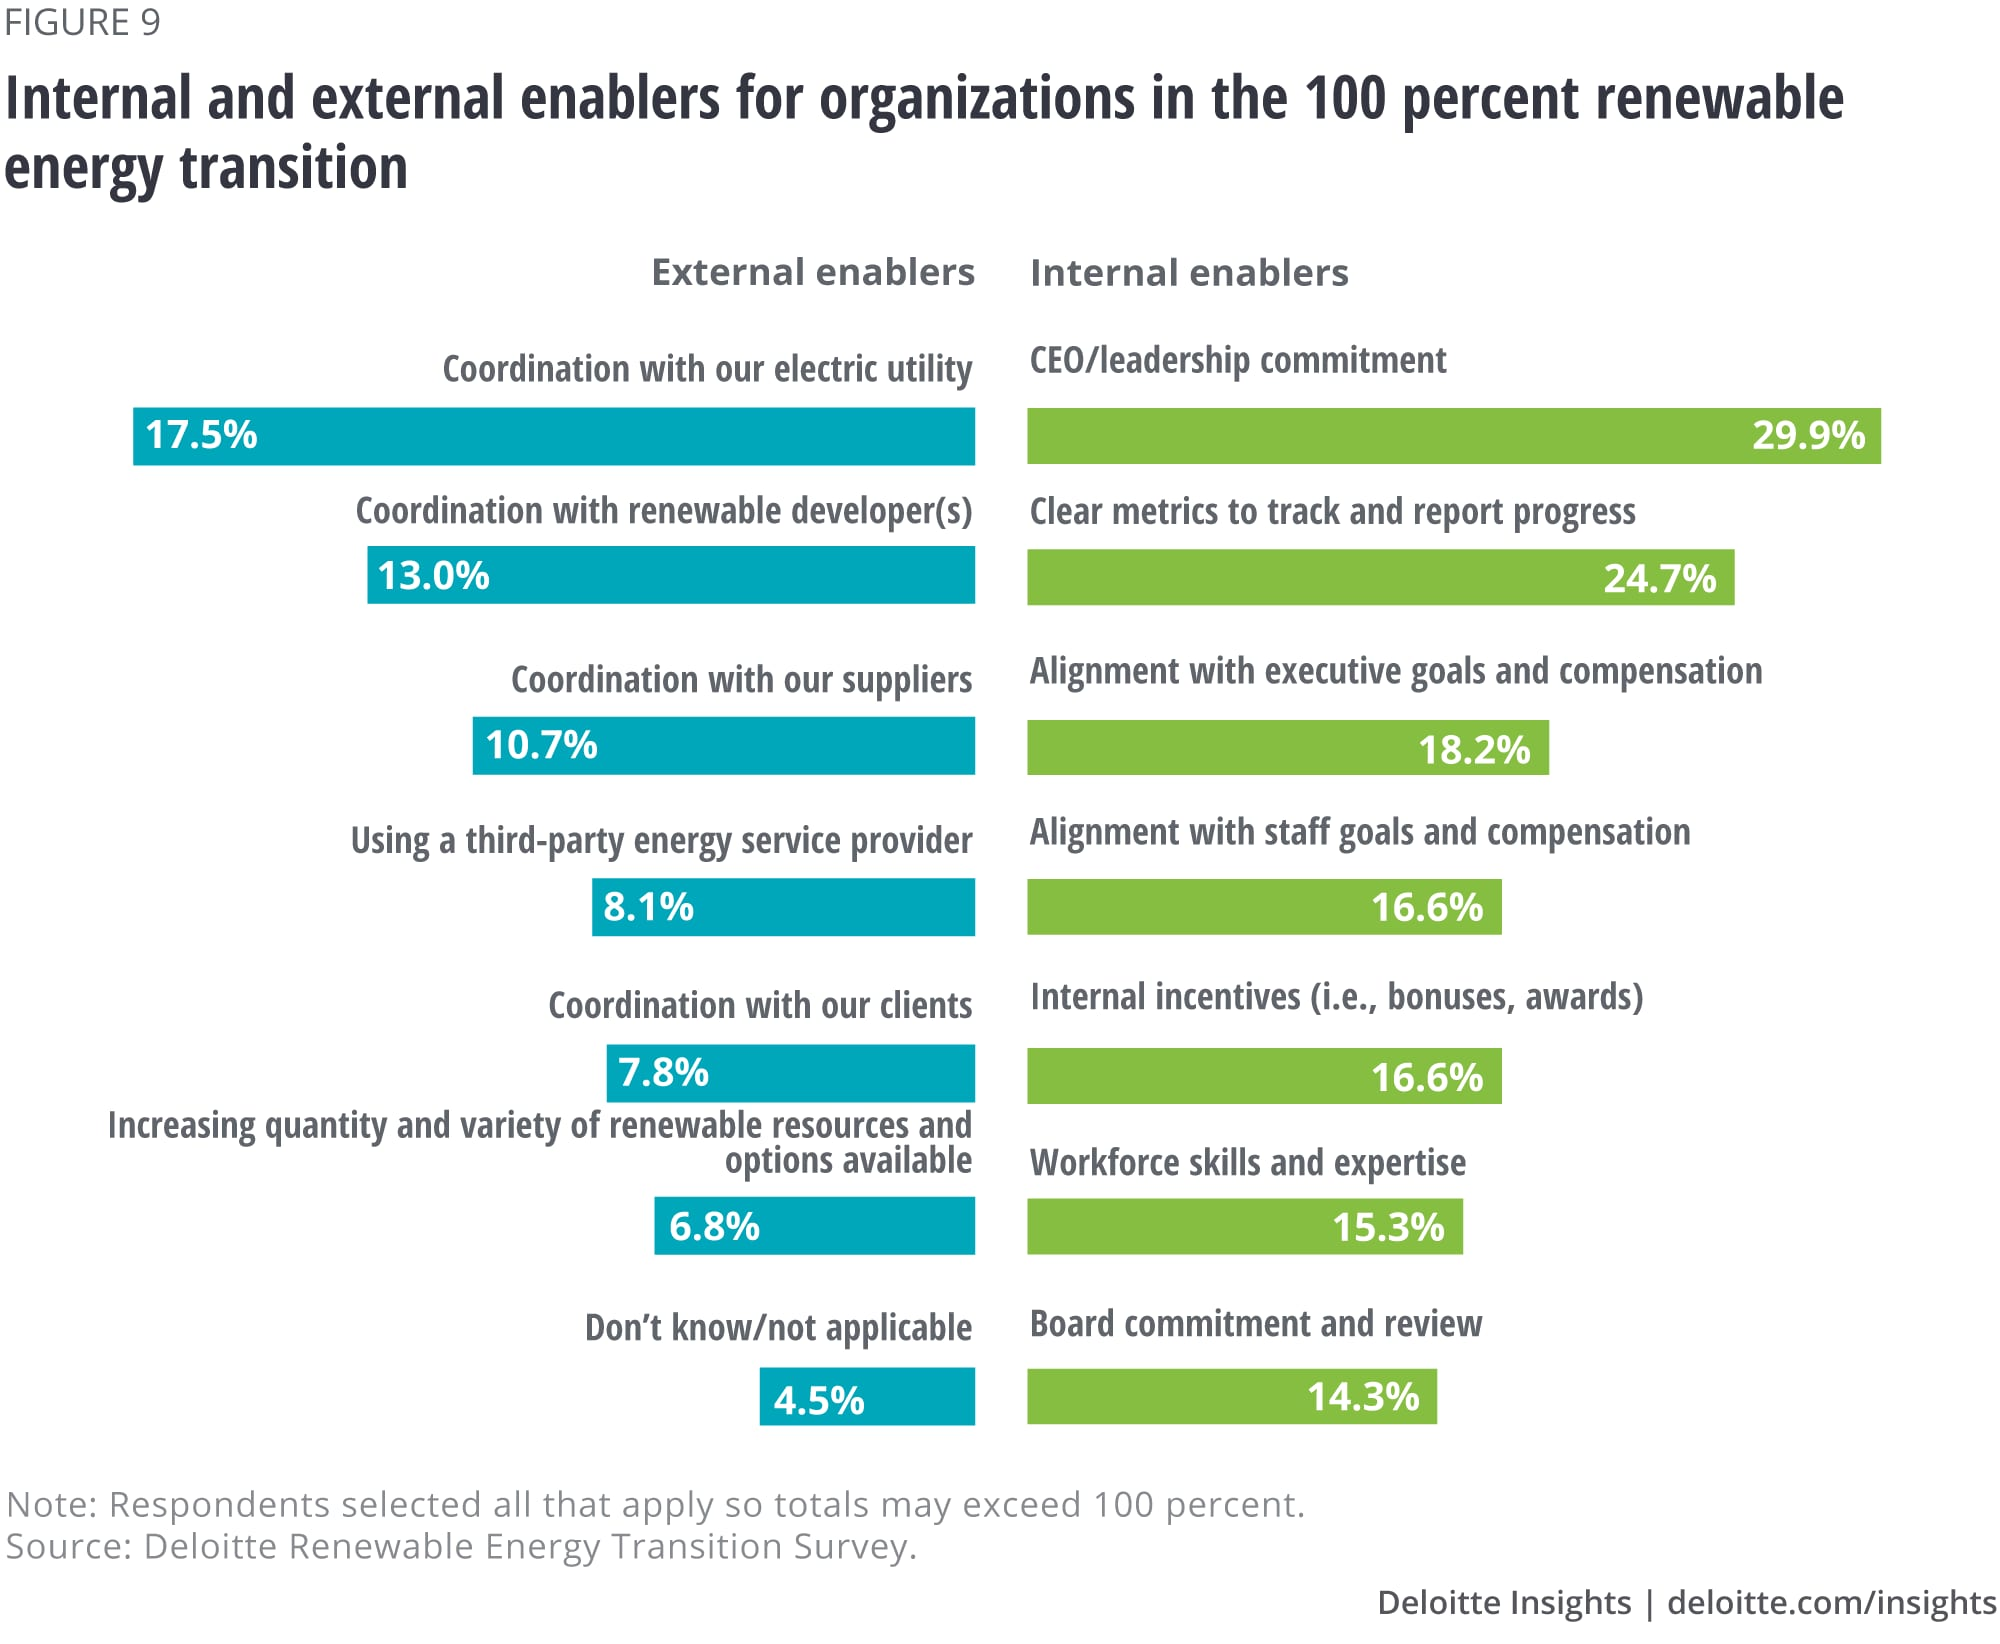 Internal and external enablers for organizations in the 100 percent renewable energy transition